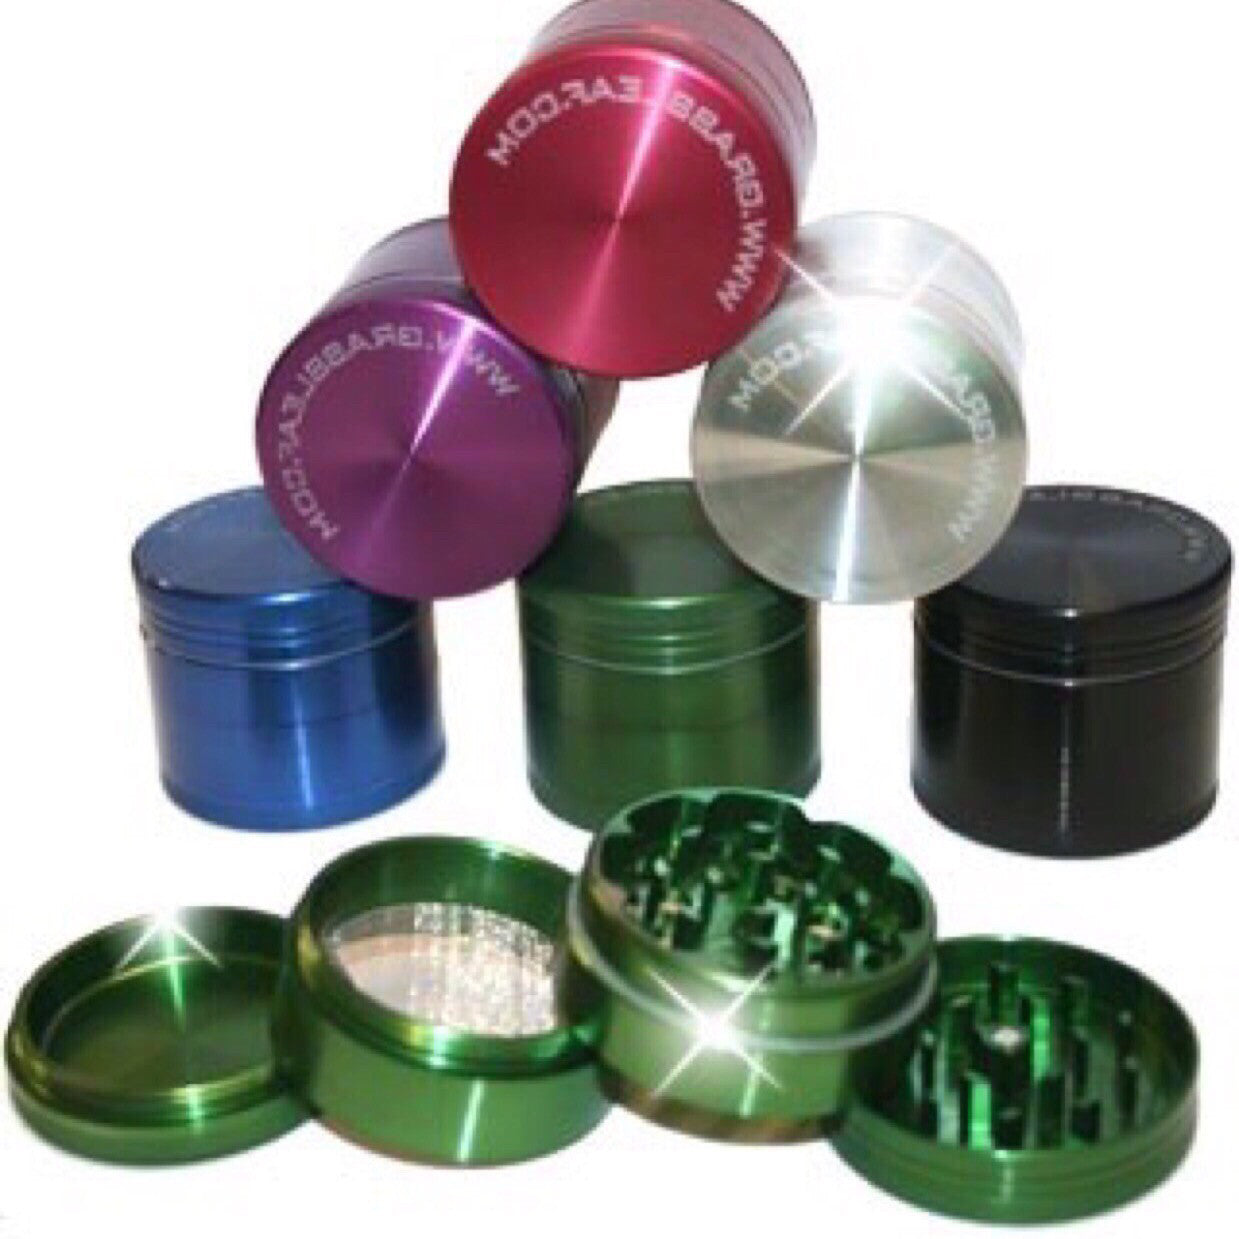 4 PART GRINDER 90MM PURPLE